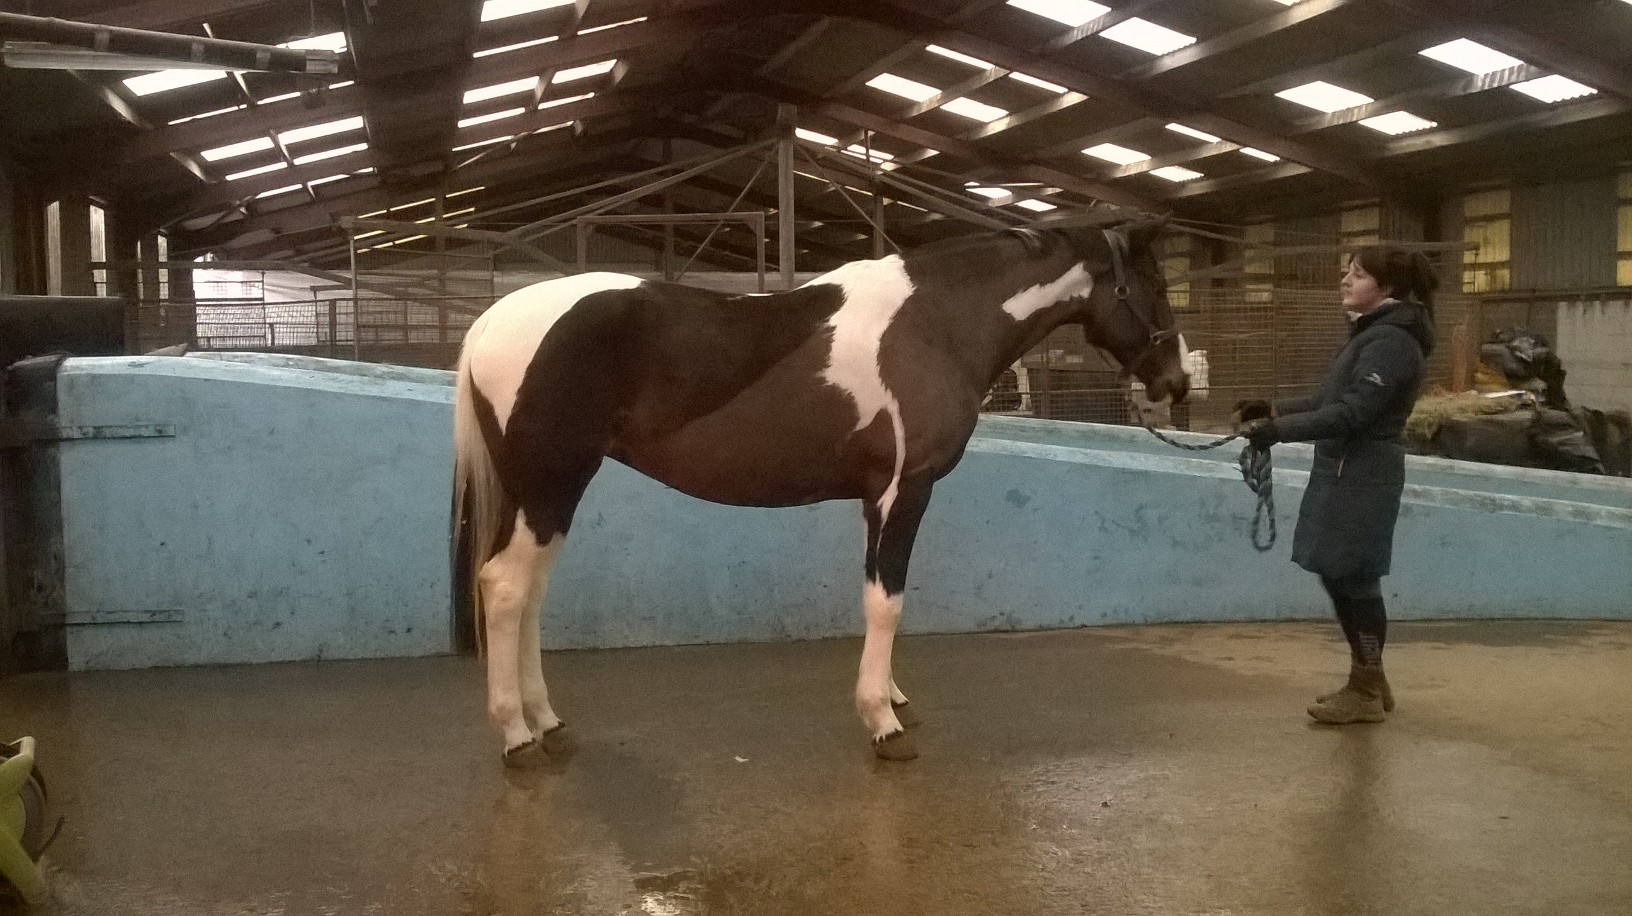 local competition/hunting horse: after (5 weeks of swimming)